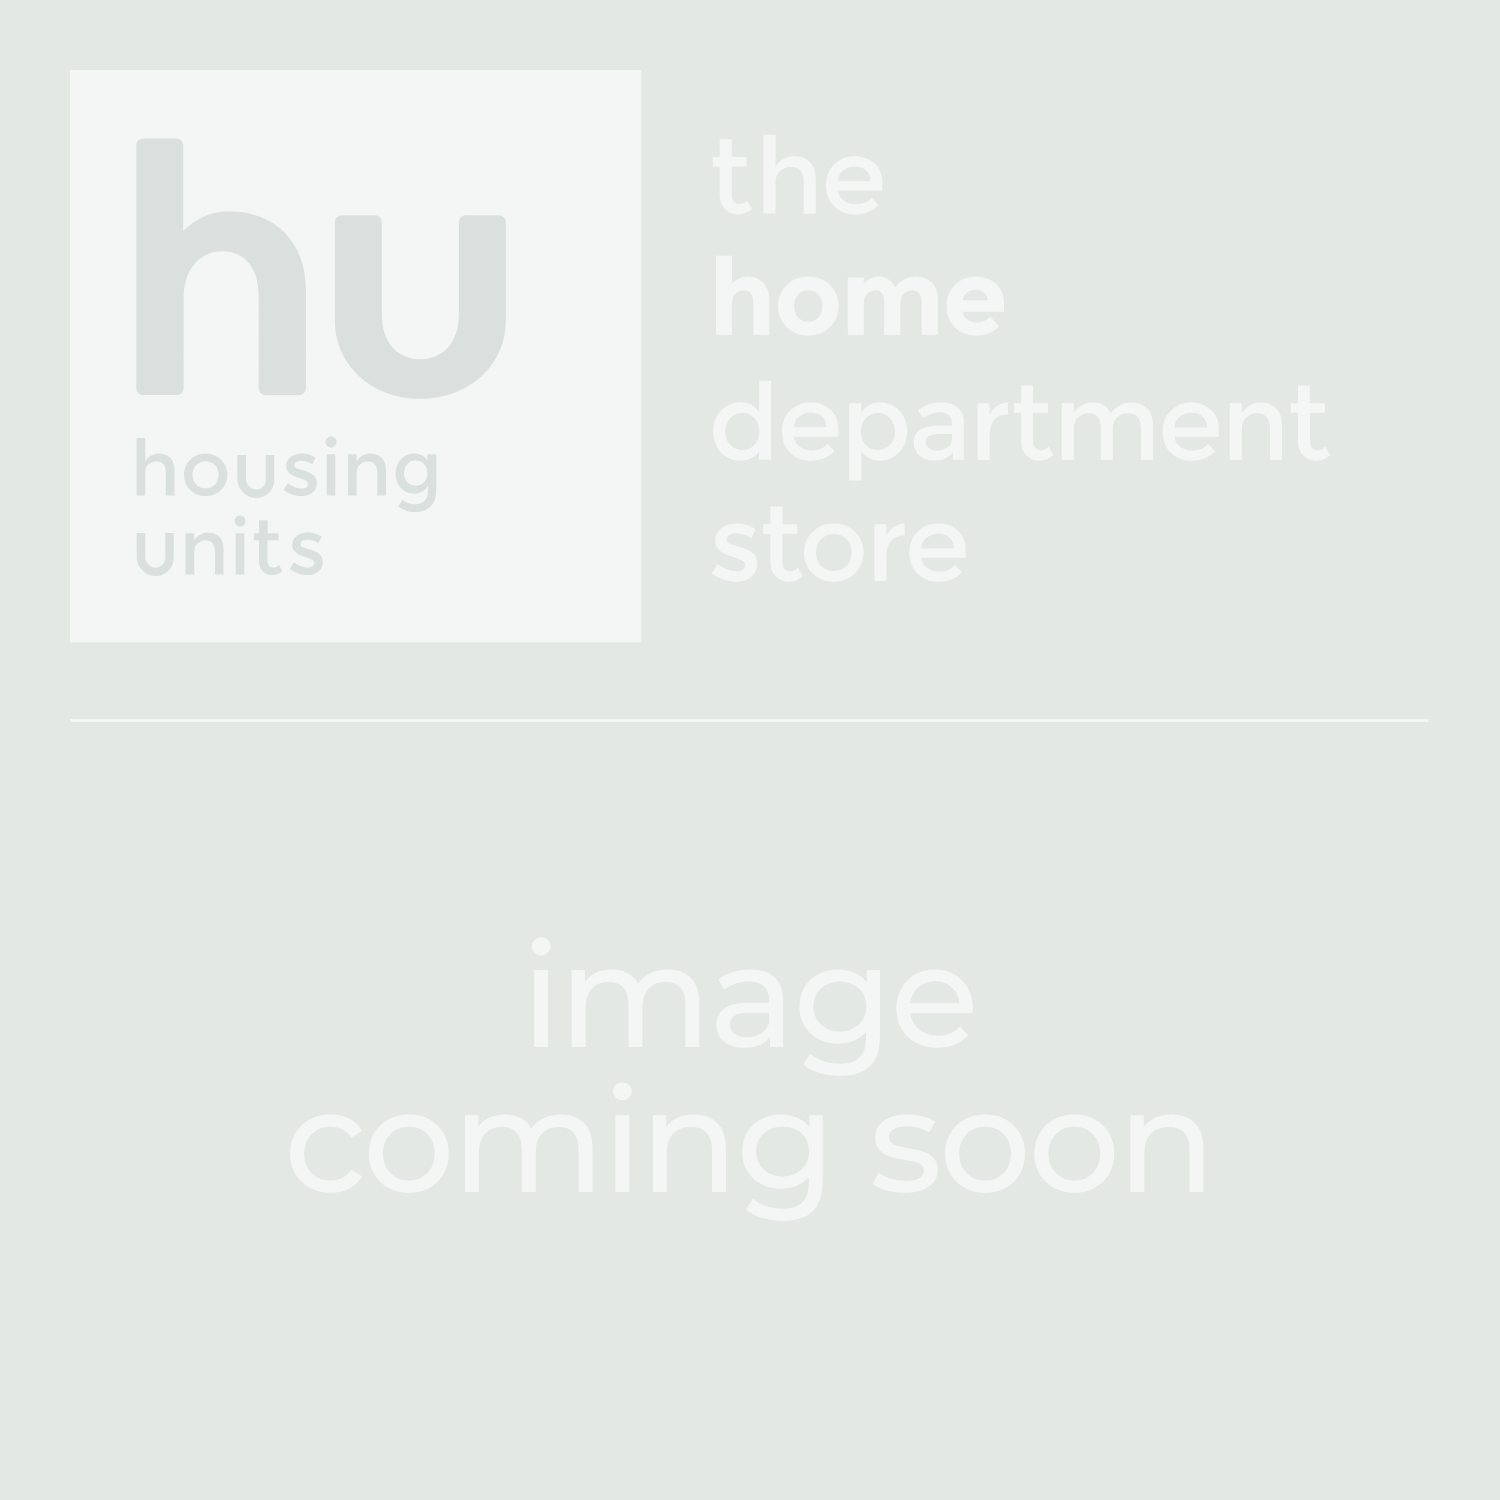 Rebecca Mirrored Kingsize Bed Frame - Lifestyle | Housing Units